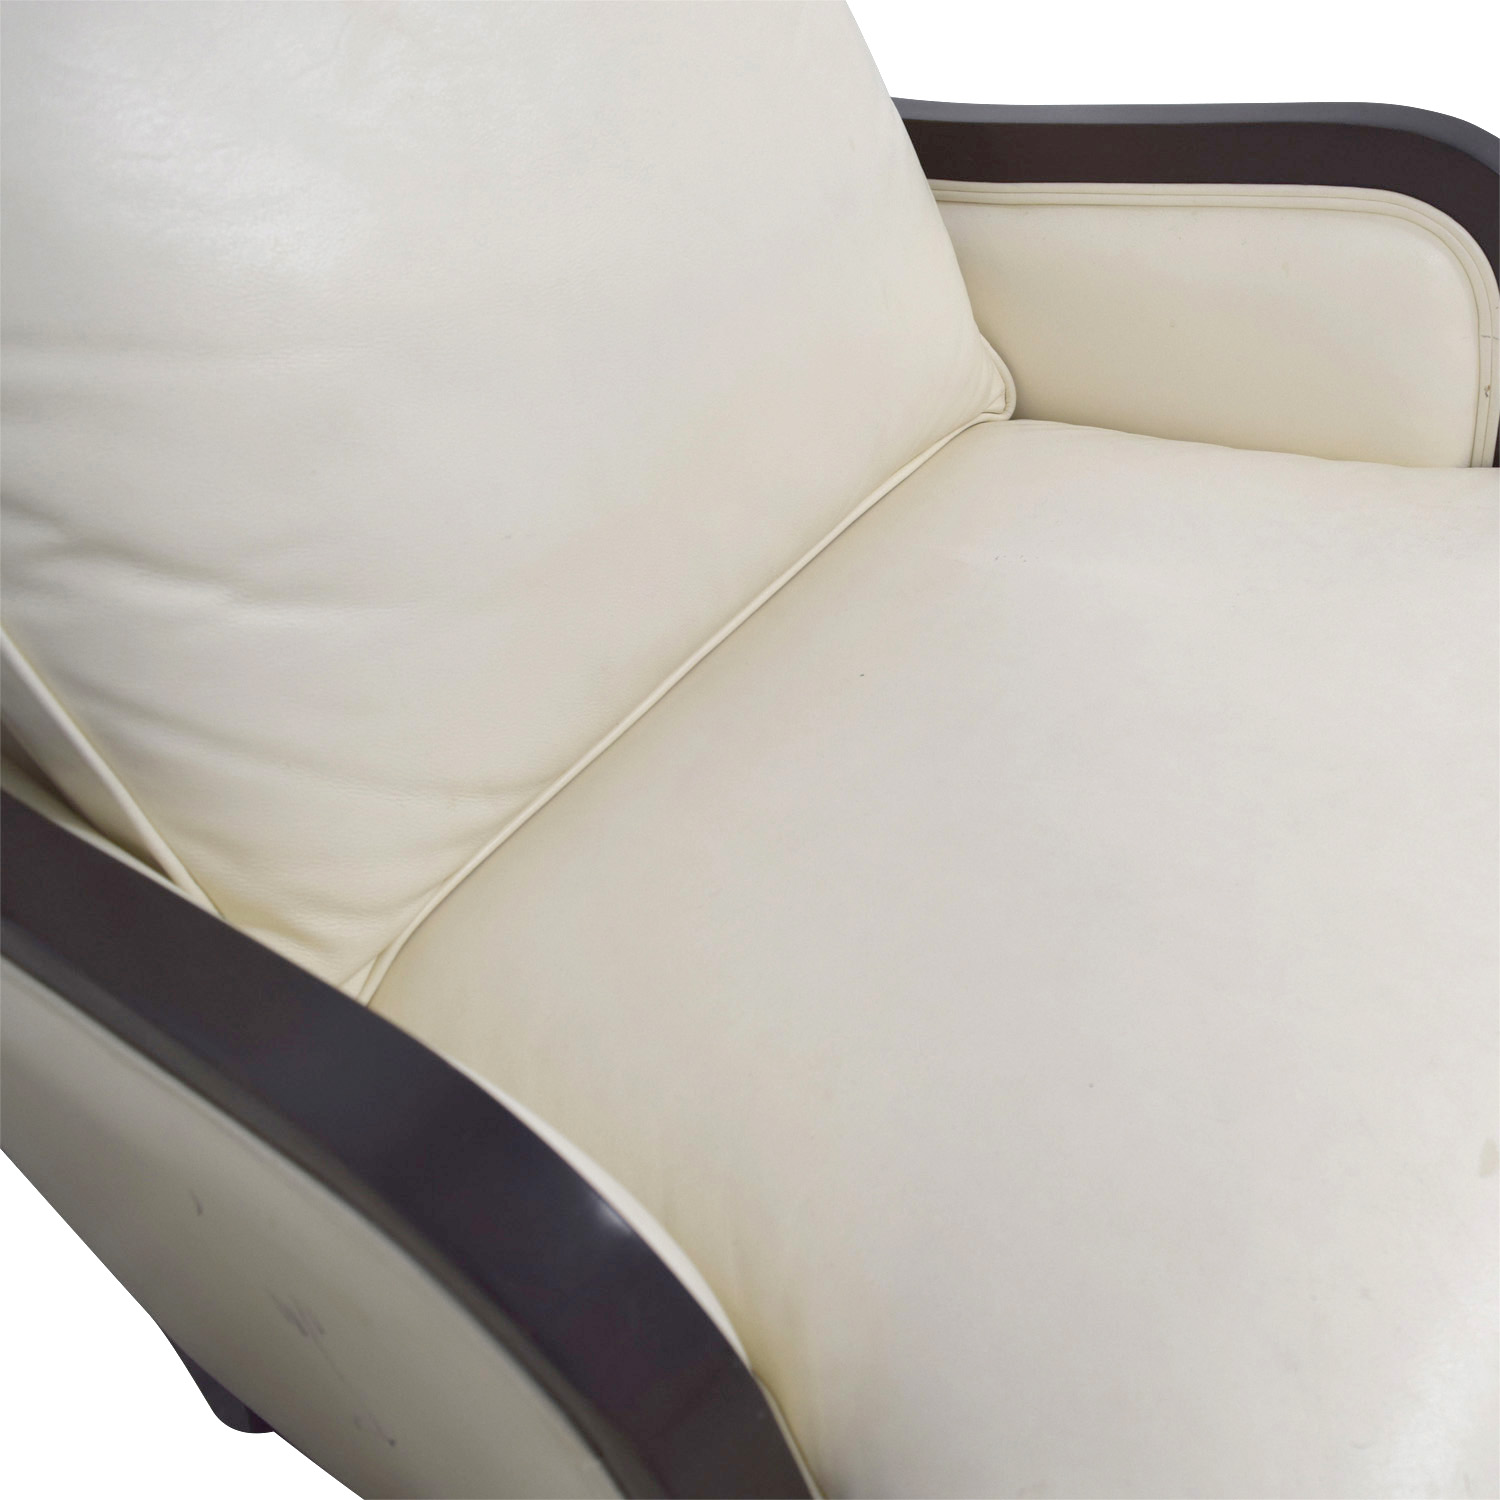 58% OFF Ethan Allen Ethan Allen Palma Ivory Leather Chairs with